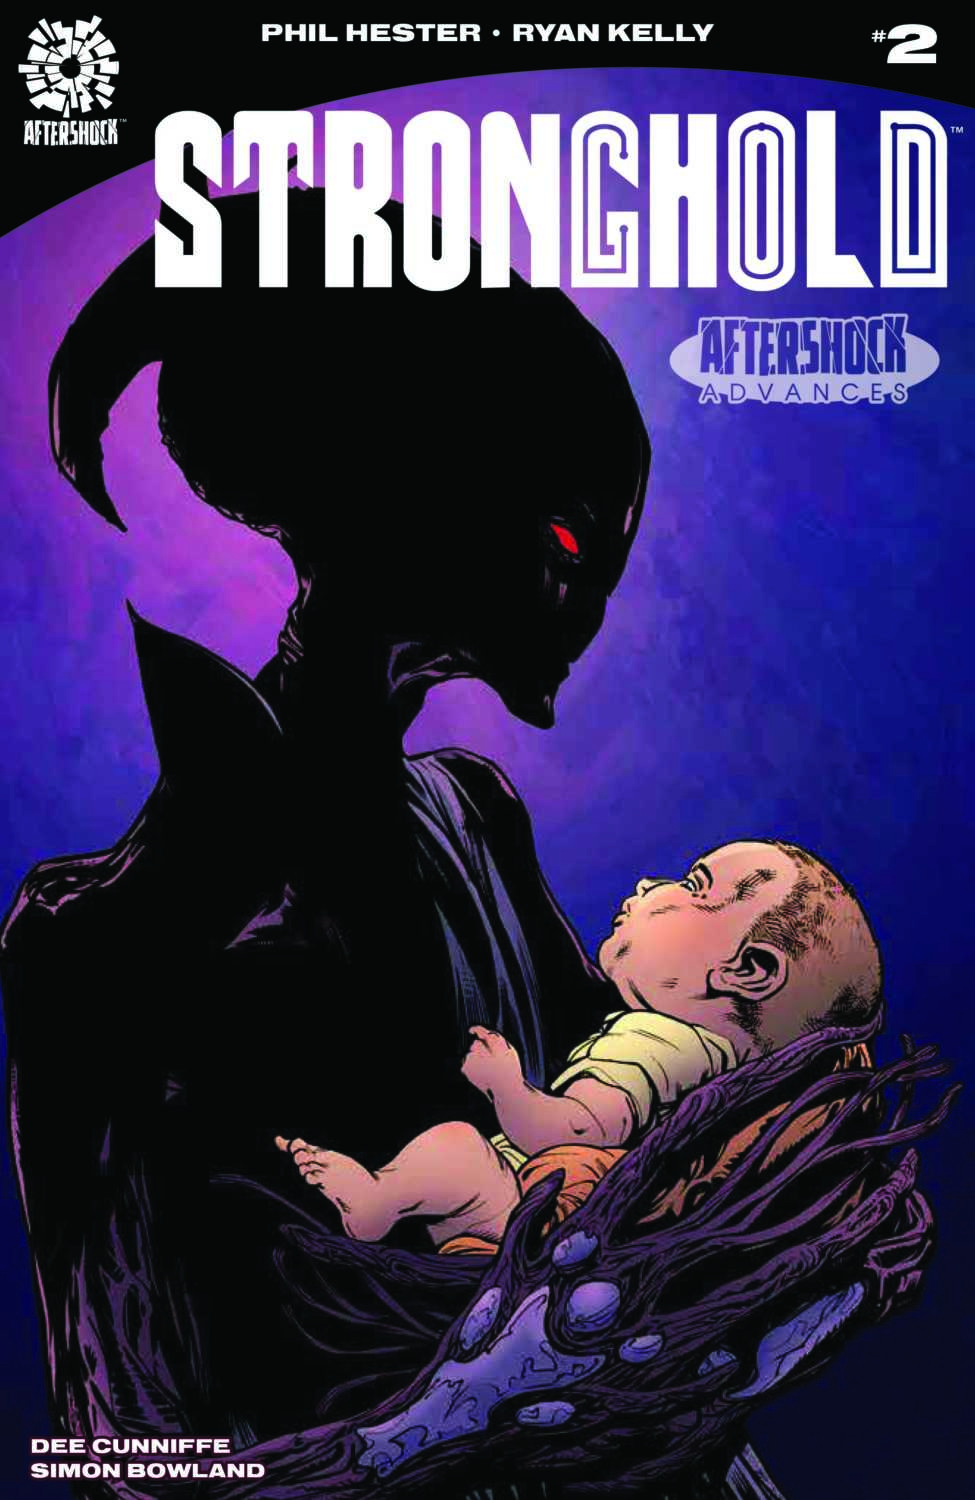 Exclusive AfterShock Preview: Phil Hester And Ryan Kelly's STRONGHOLD #2 4